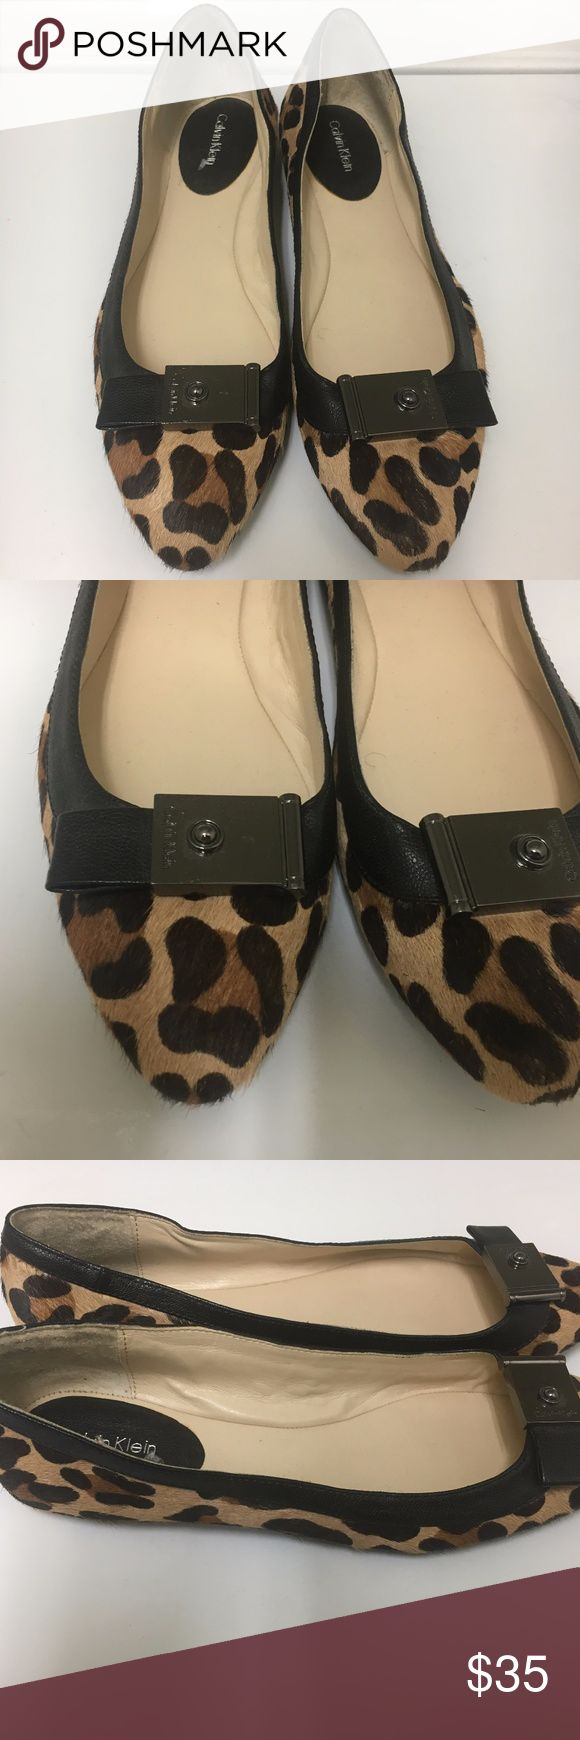 "Calvin Klein Parkley Leopard Ballet Flats   9 Calvin Klein Leopard Print Calf Hair Leather Ballet Flats Pewter buckle with ""Calvin Klein"" and black leather tab Beautiful rich browns and black print Size 9M Only worn once Very nice From a smoke free home Calvin Klein Shoes Flats & Loafers"